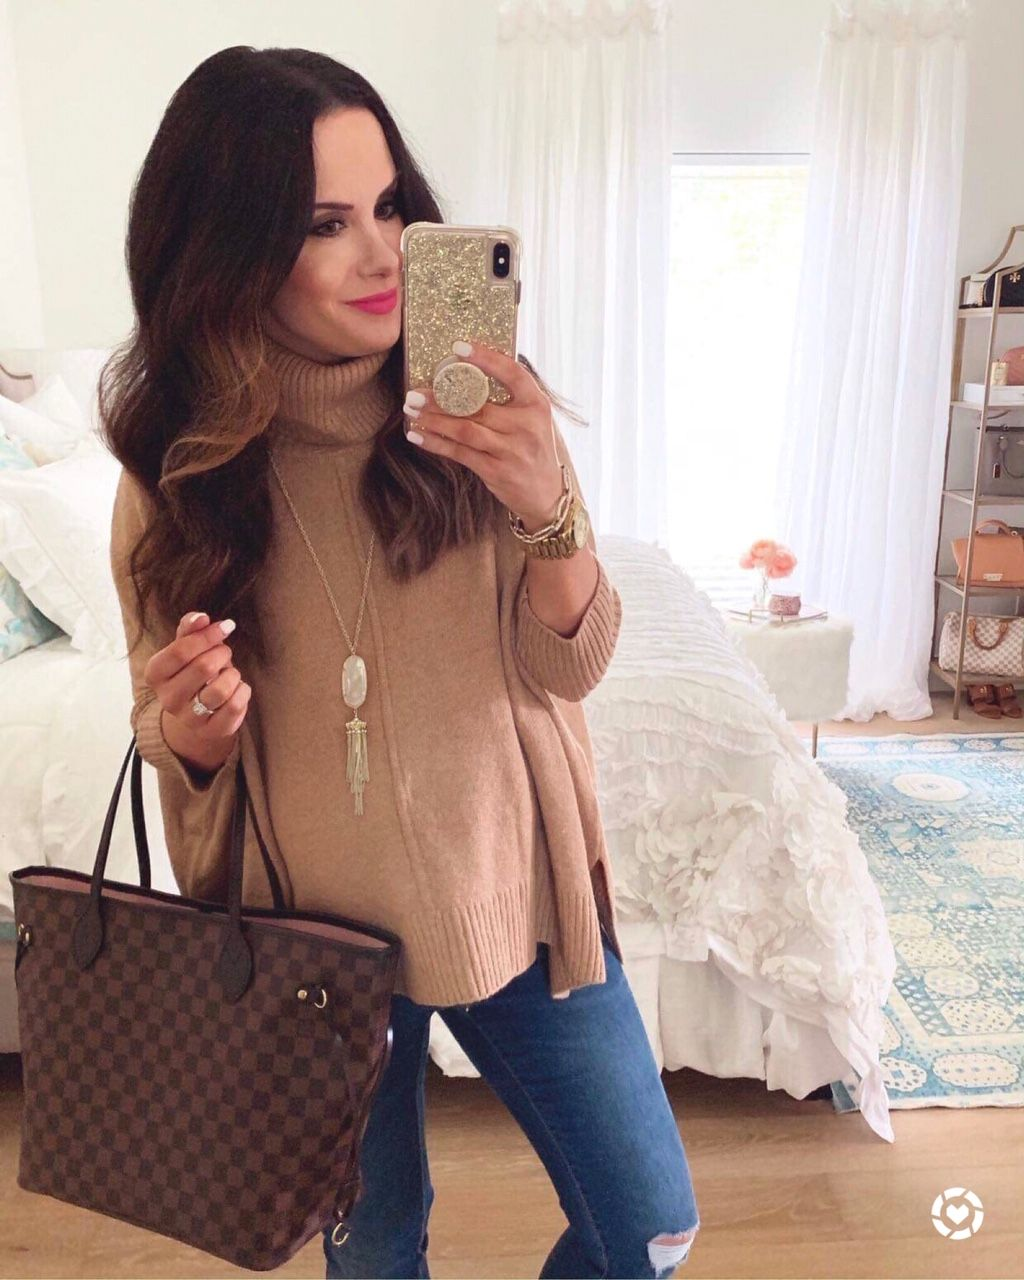 40% Off LOFT & Ann Taylor New Fall Arrivals & More! - The Double Take Girls #ponchosweater